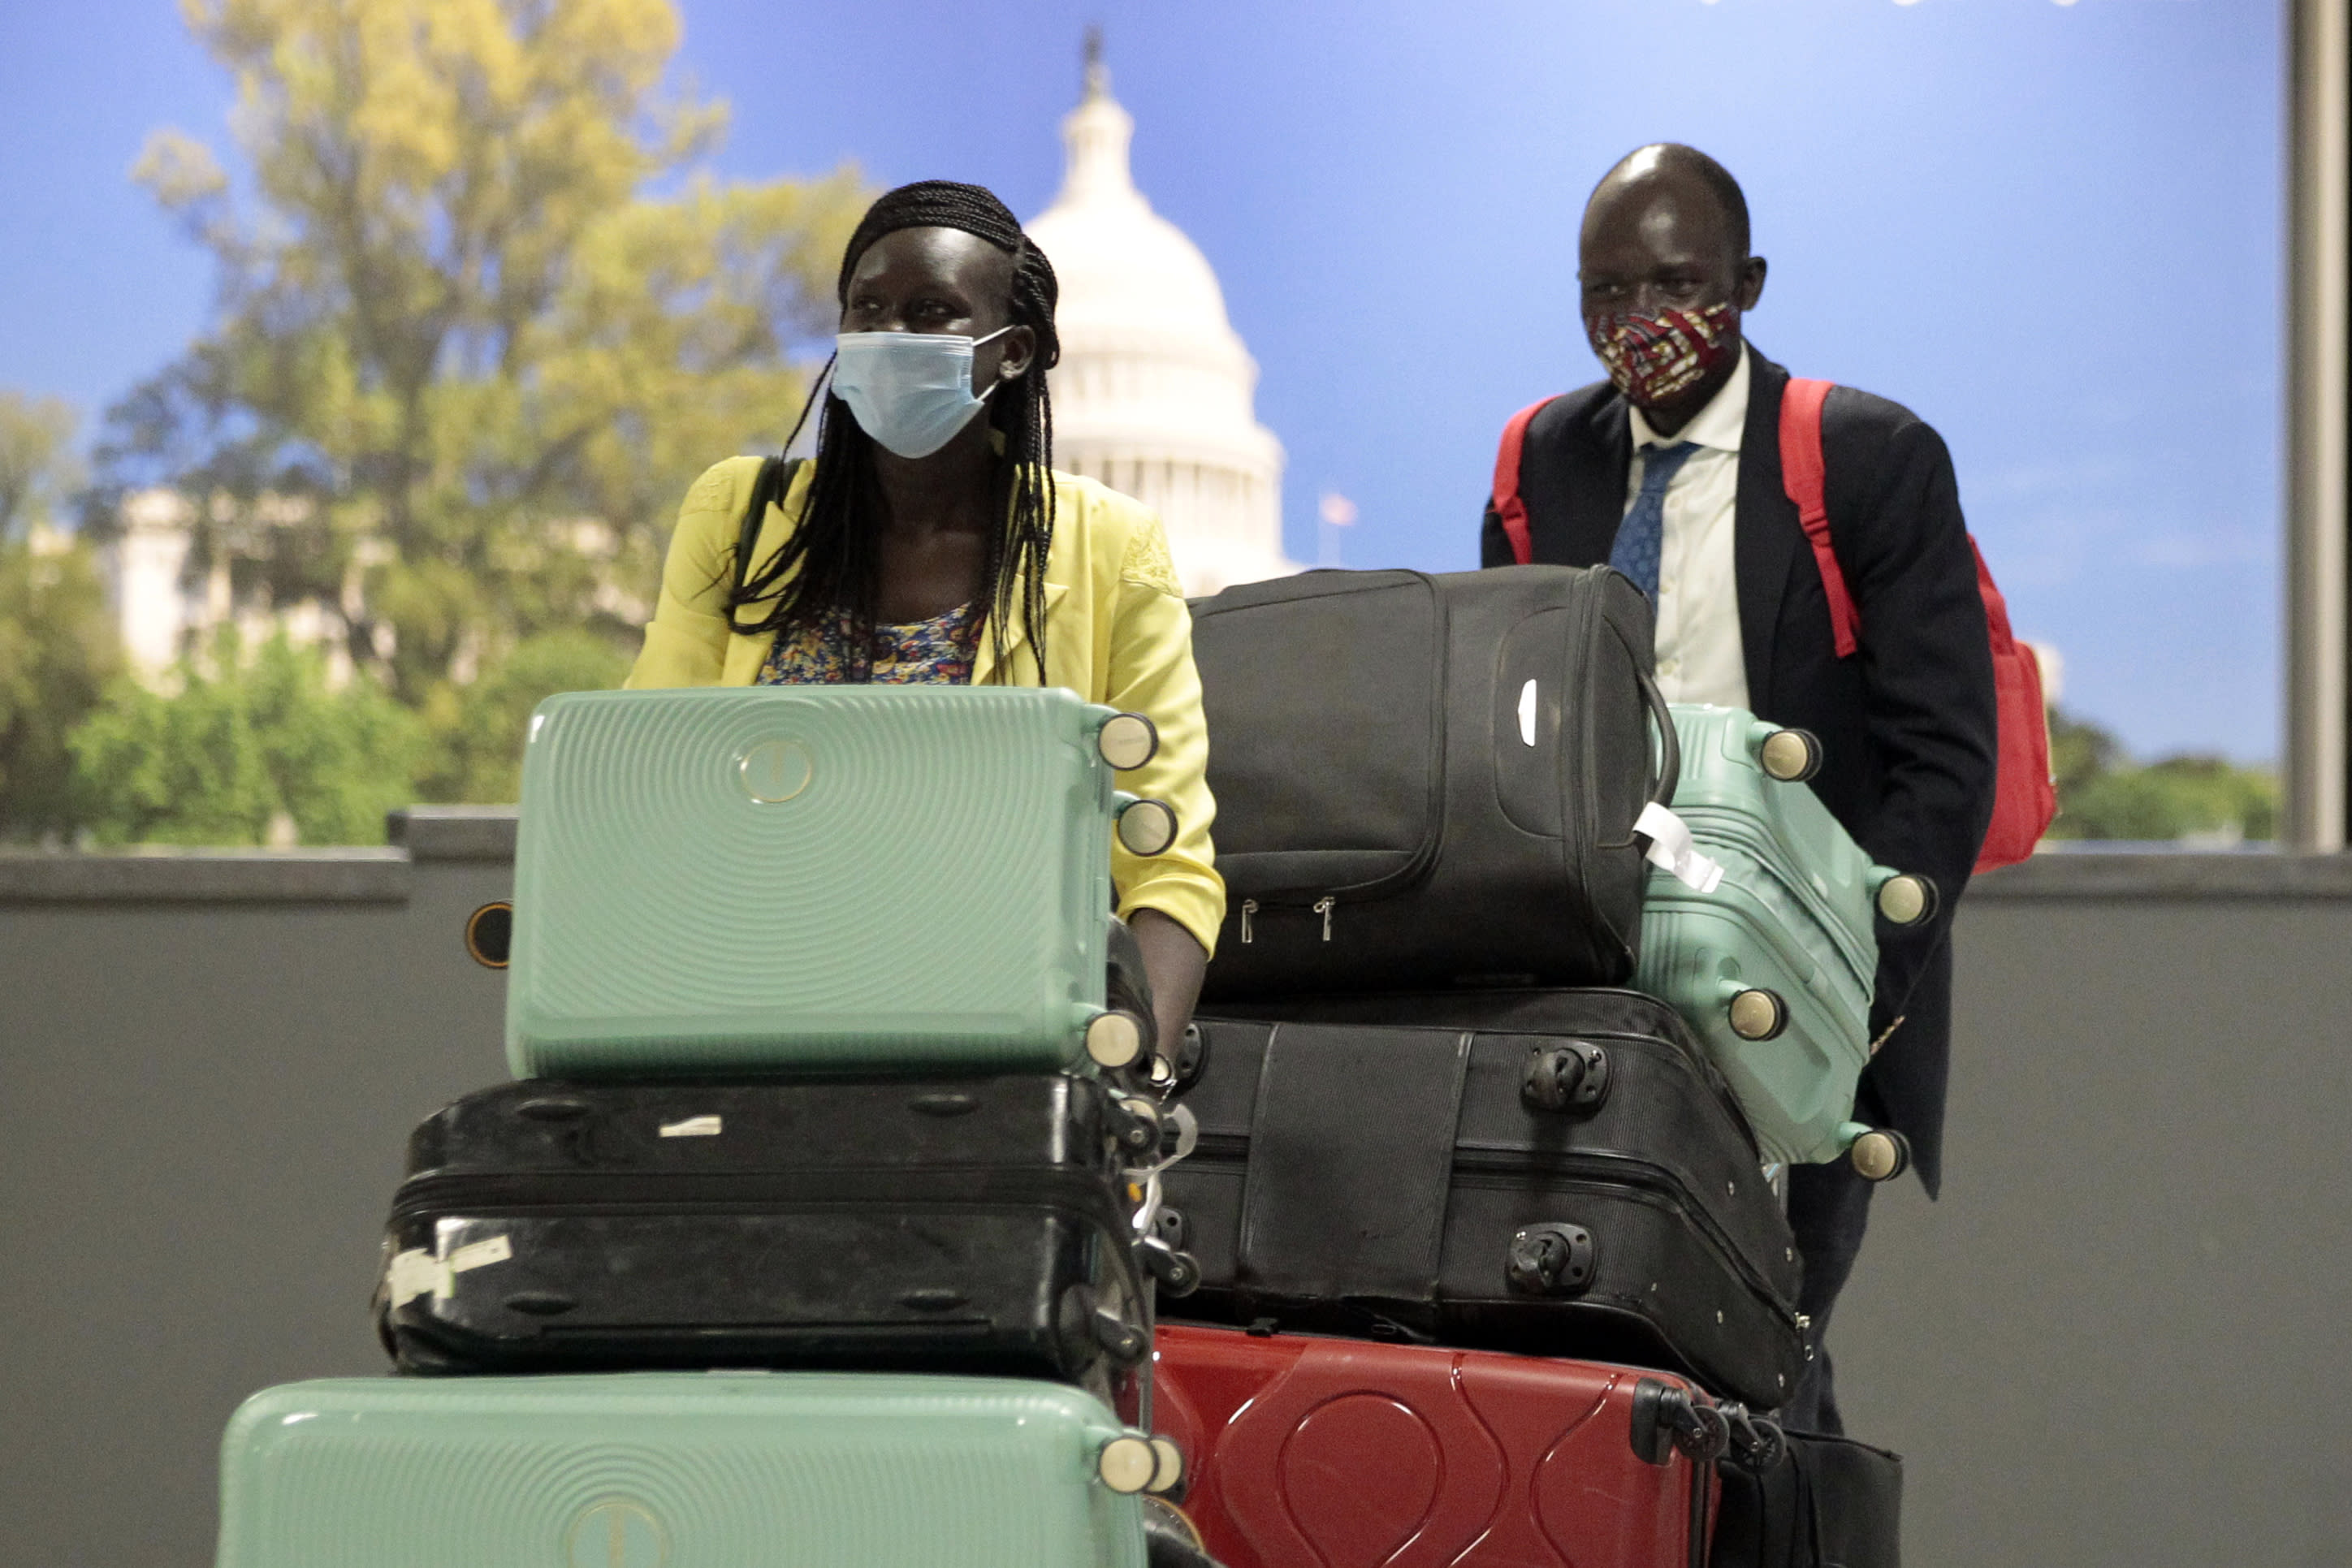 Peter Biar Ajak, background, arrives with his wife Nyathon Hoth Mai, front, and kids at Washington Dulles International Airport in Chantilly, Va.,Thursday, July 23, 2020. (AP Photo/Luis M. Alvarez)